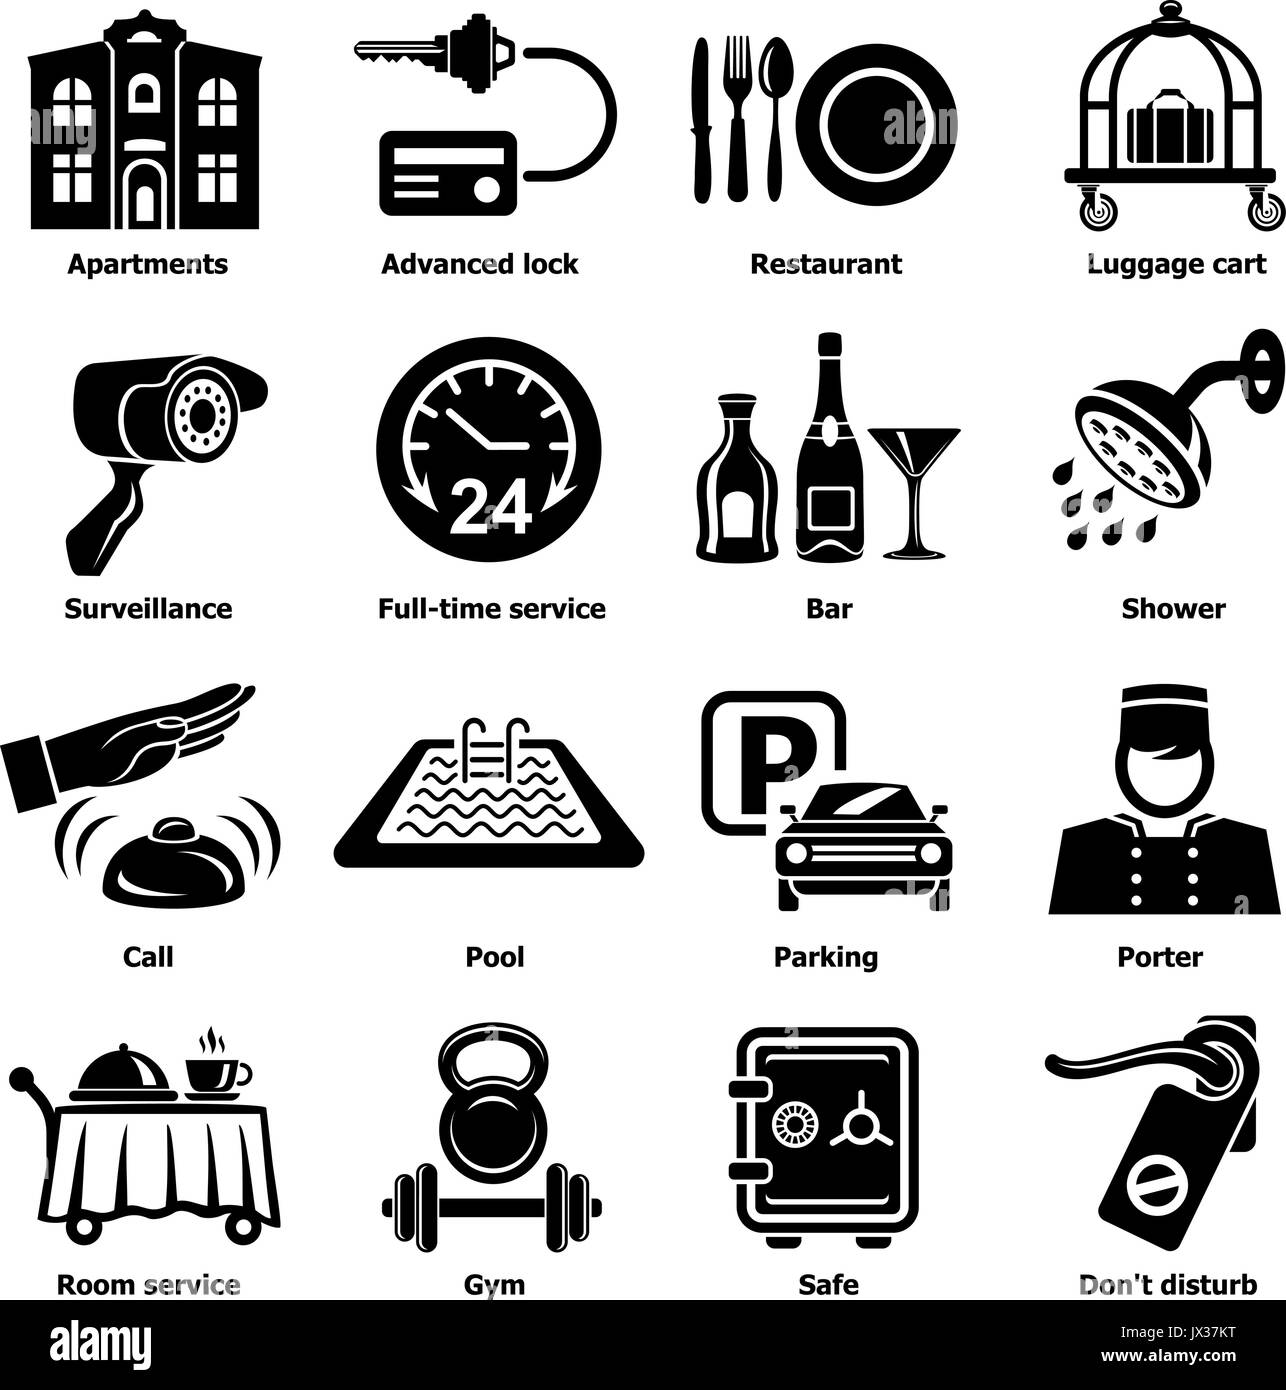 Hotel service icons set, simple style - Stock Image